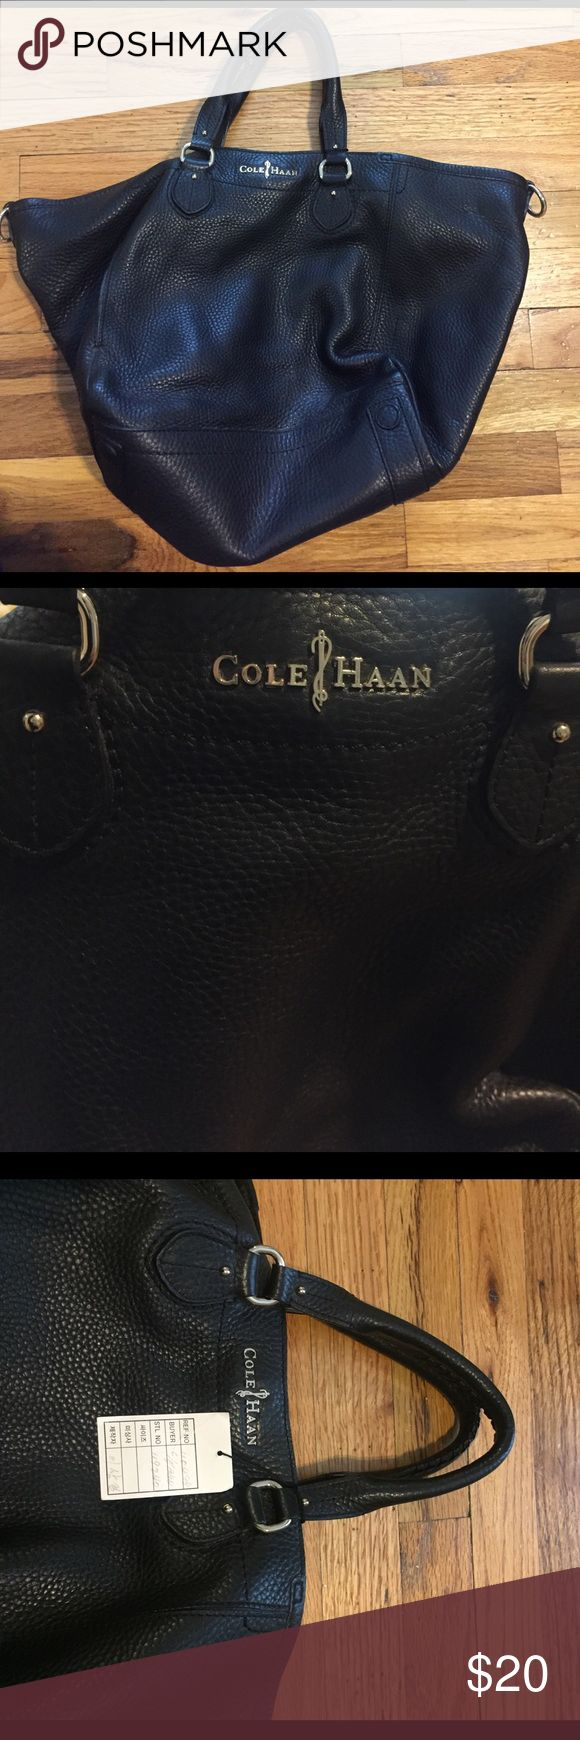 Black leather Cole Haan bag New with tags. In great condition. Black leather Cole Haan purse. Cole Haan Bags Shoulder Bags